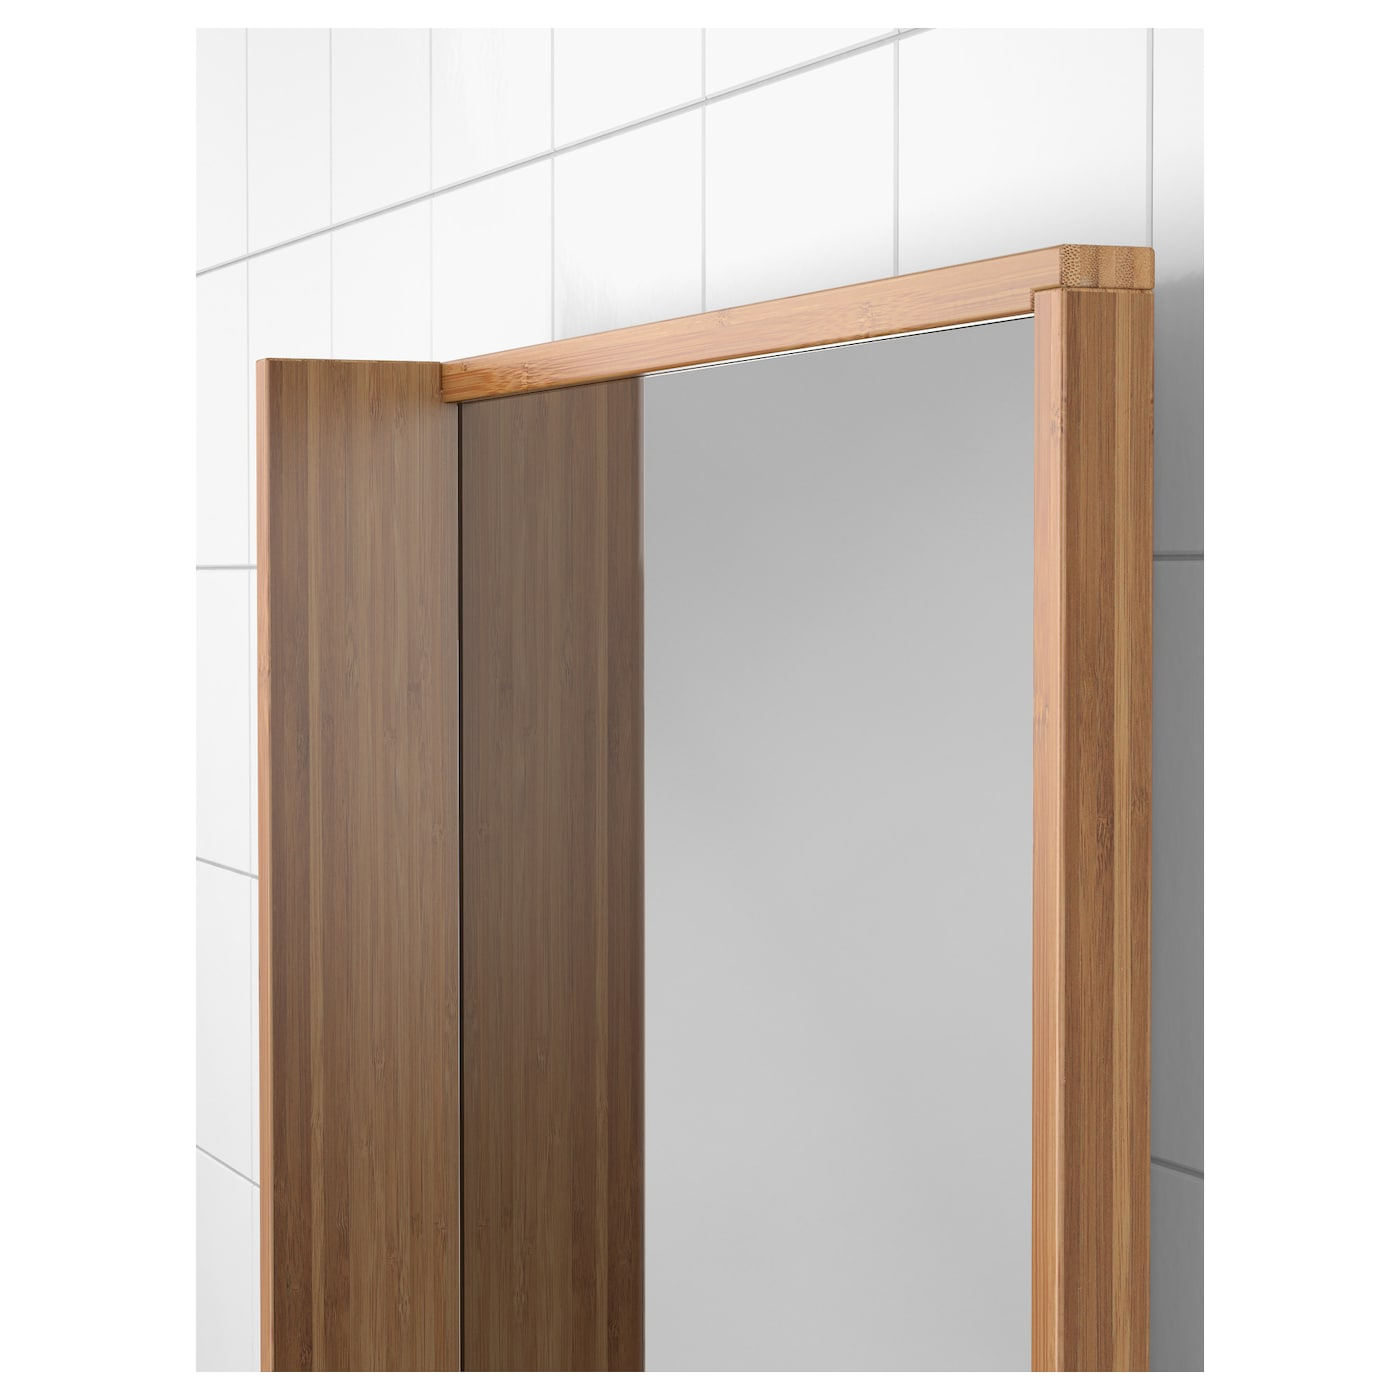 ikea rgrund mirror you can hang jewellery from the knobs on the side